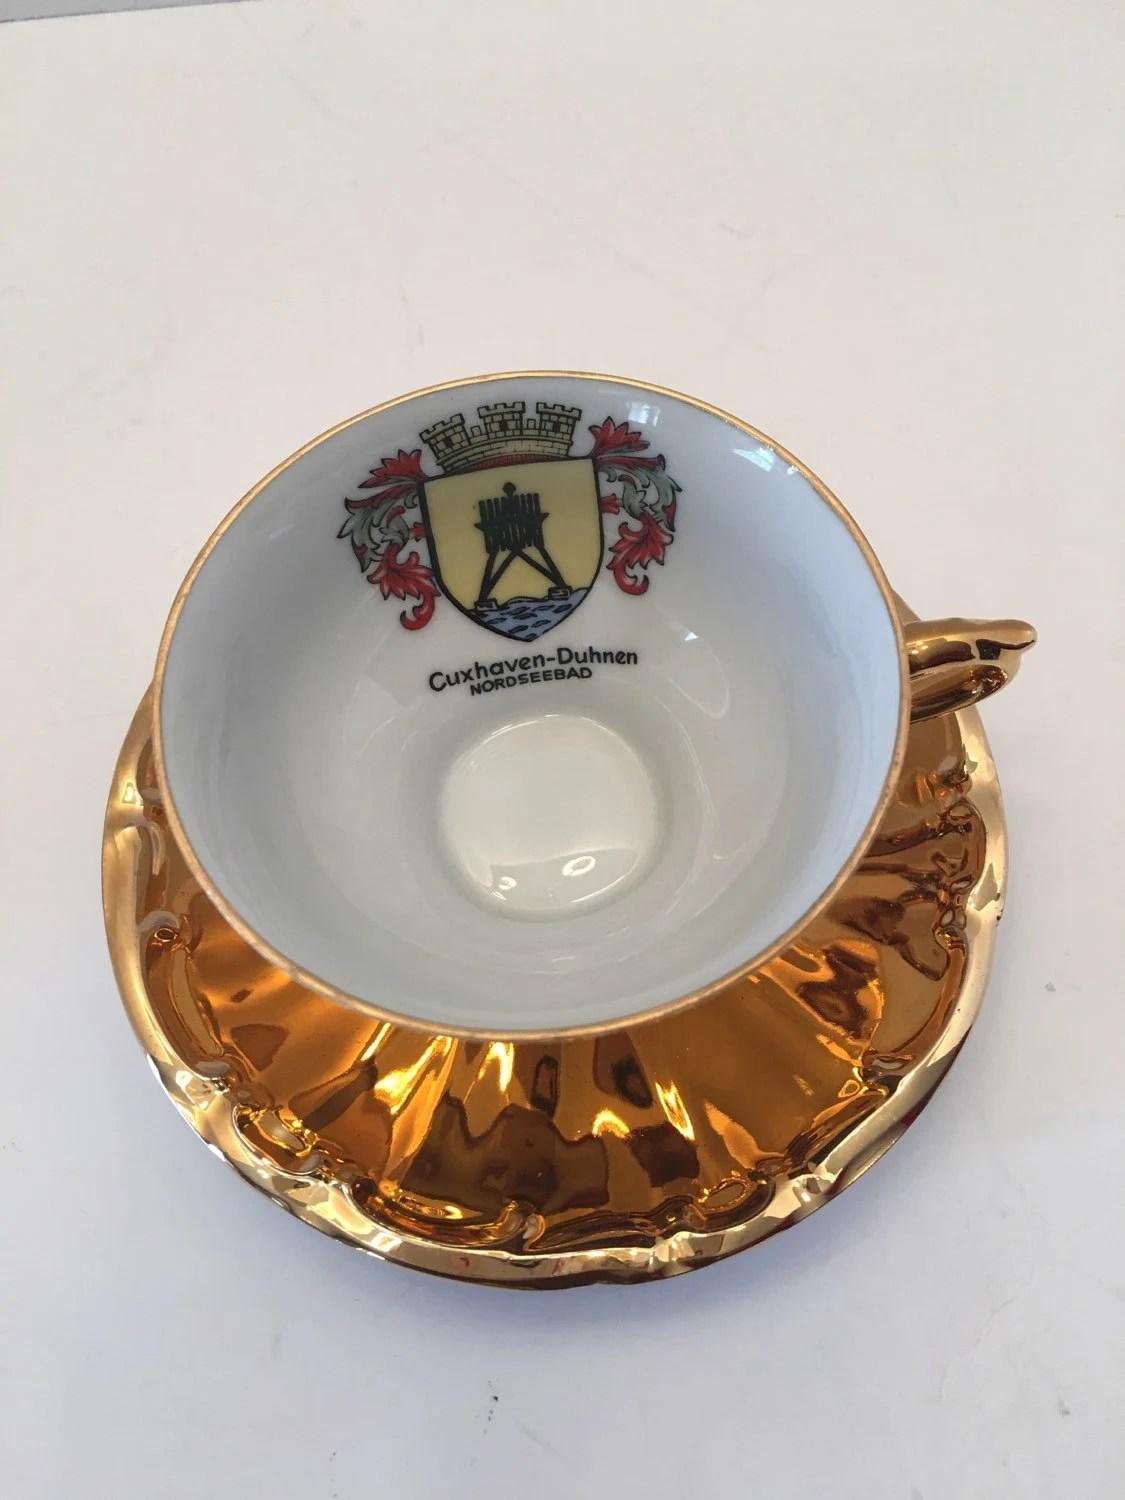 Shabby Chic Cuxhaven Cuxhaven Duhmen Nordseebad Teacup And Saucer Gold Khm Bavaria Germany Gold Crown Cup And Plate Vintage